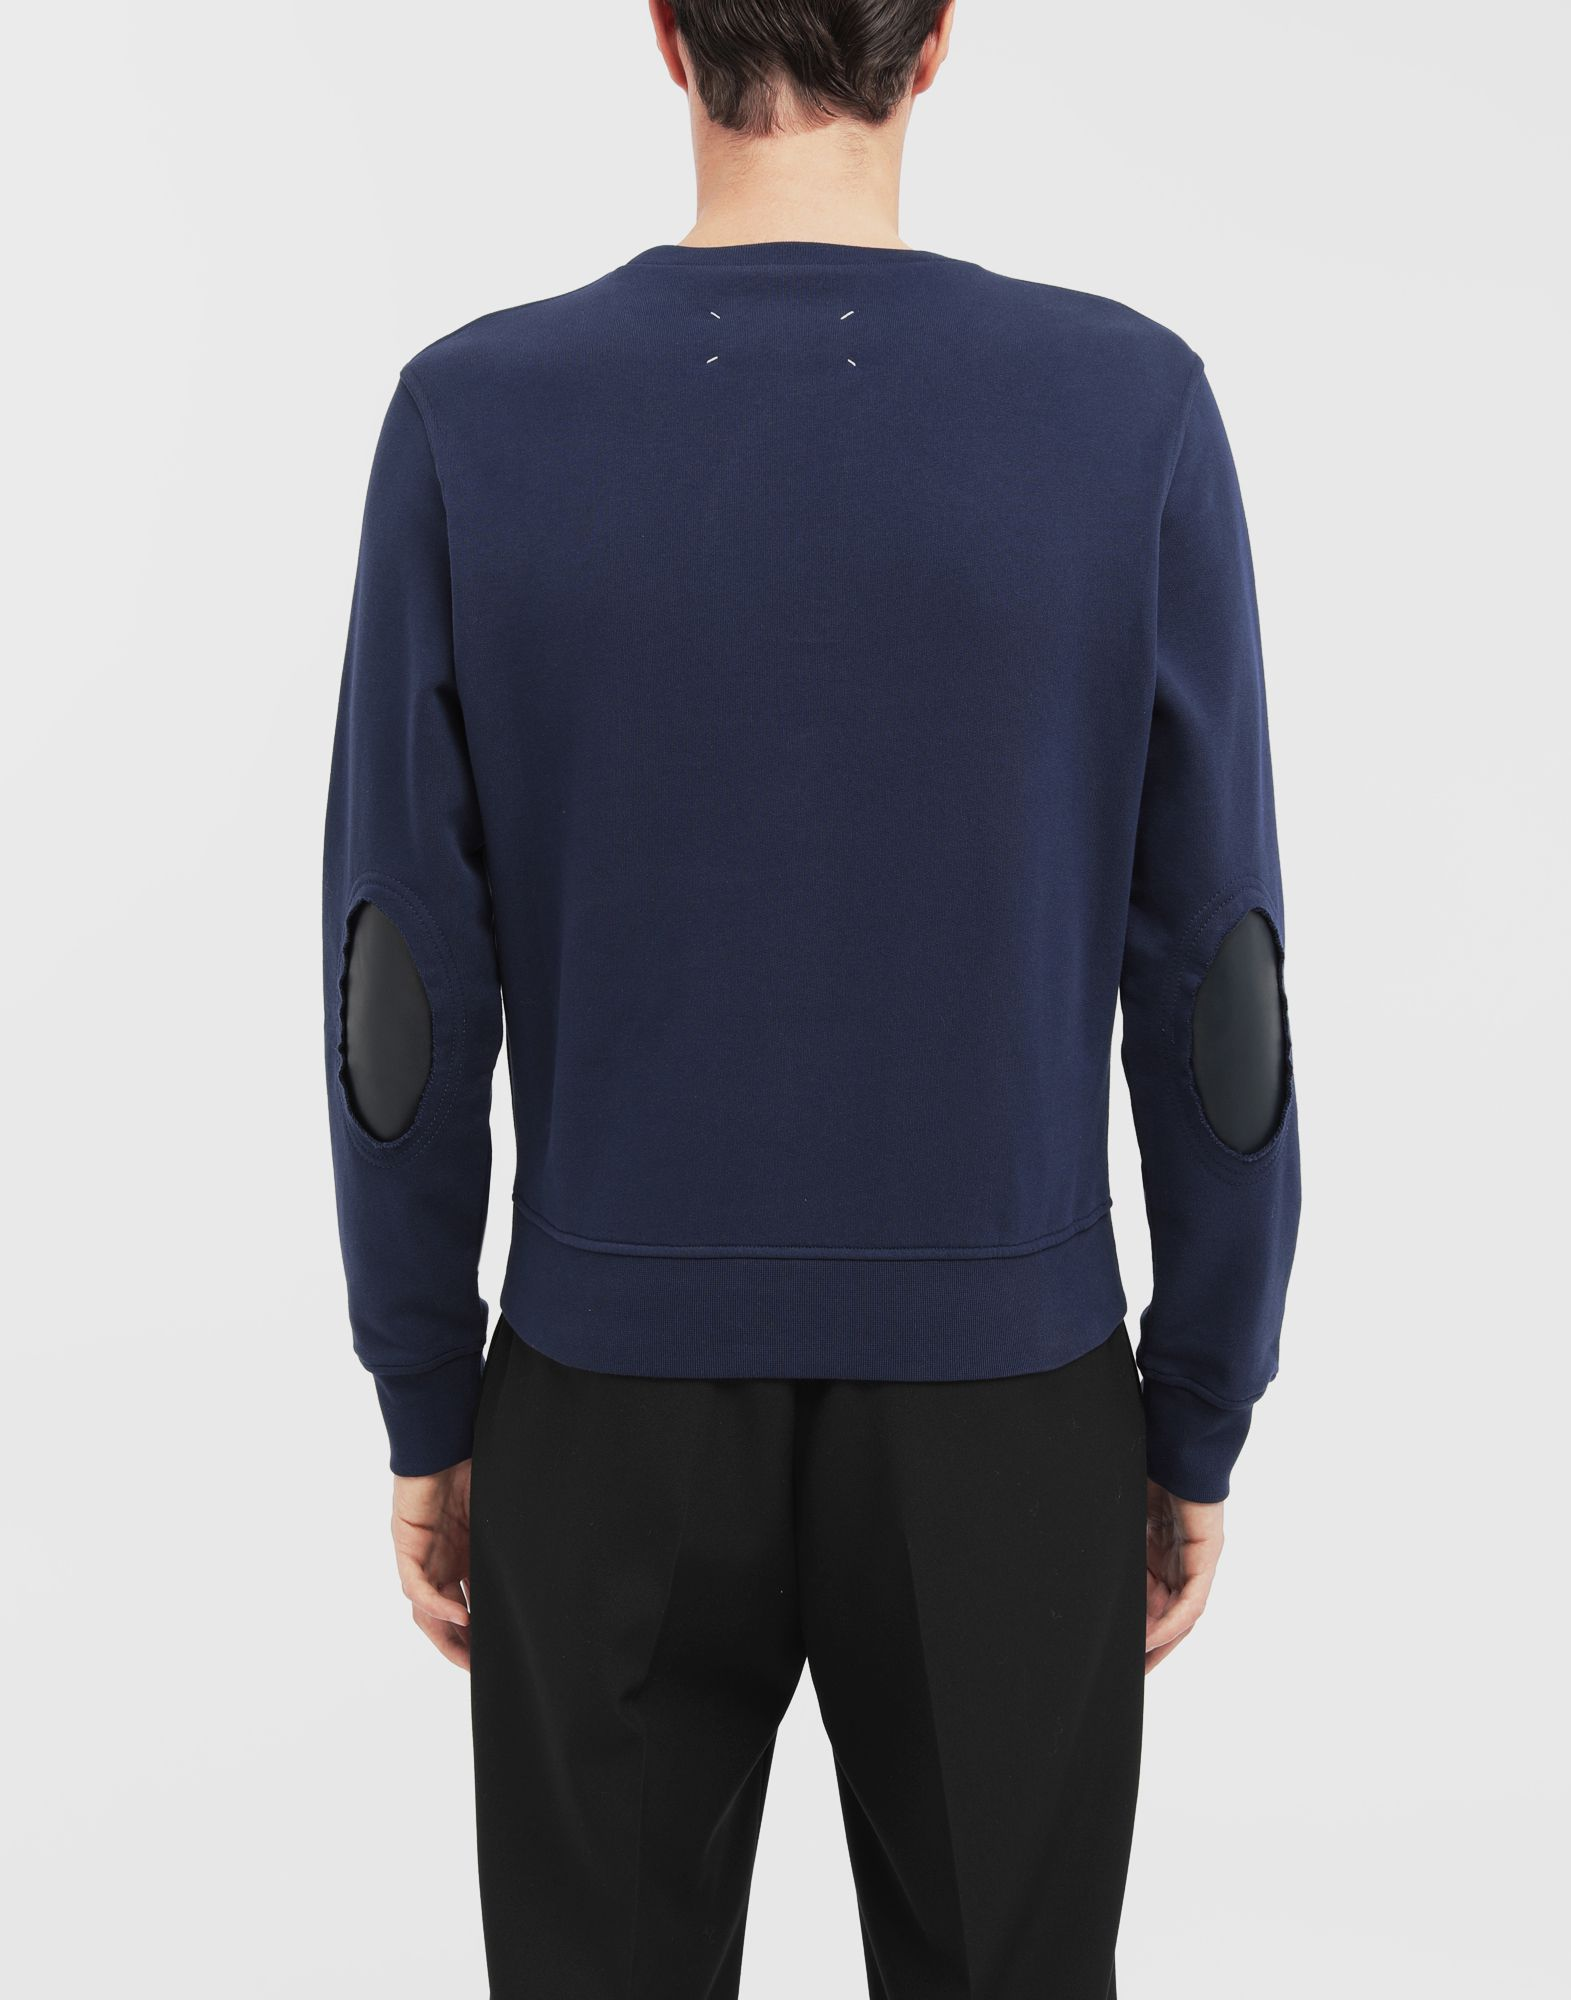 MAISON MARGIELA Décortiqué elbow patch sweatshirt Sweatshirt Man e